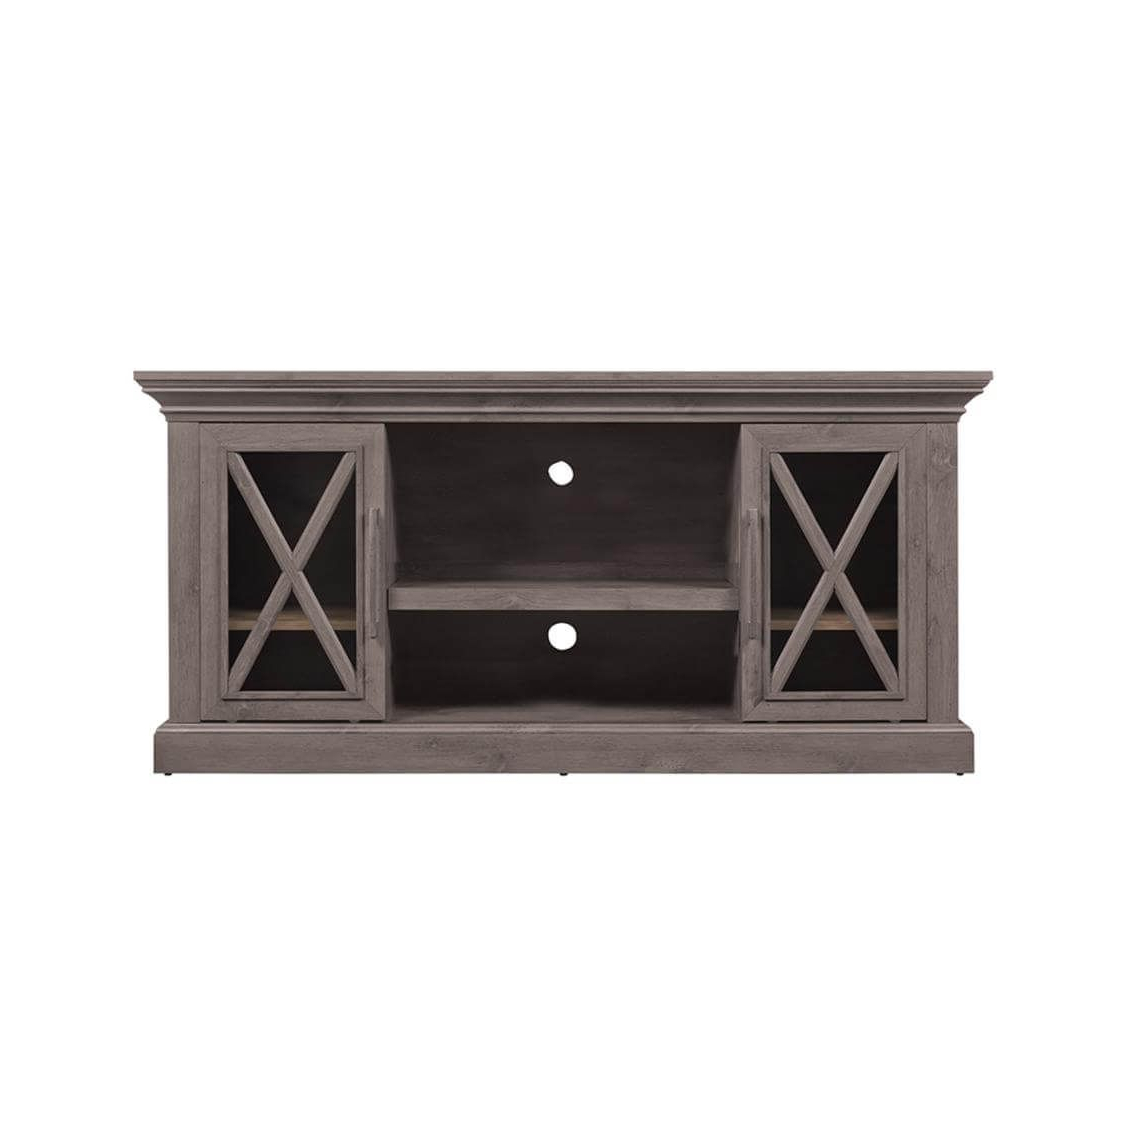 34 Enhance Your Living Space With Amazing Lowes Fireplace Tv Stand Within Sinclair Grey 74 Inch Tv Stands (Gallery 13 of 20)